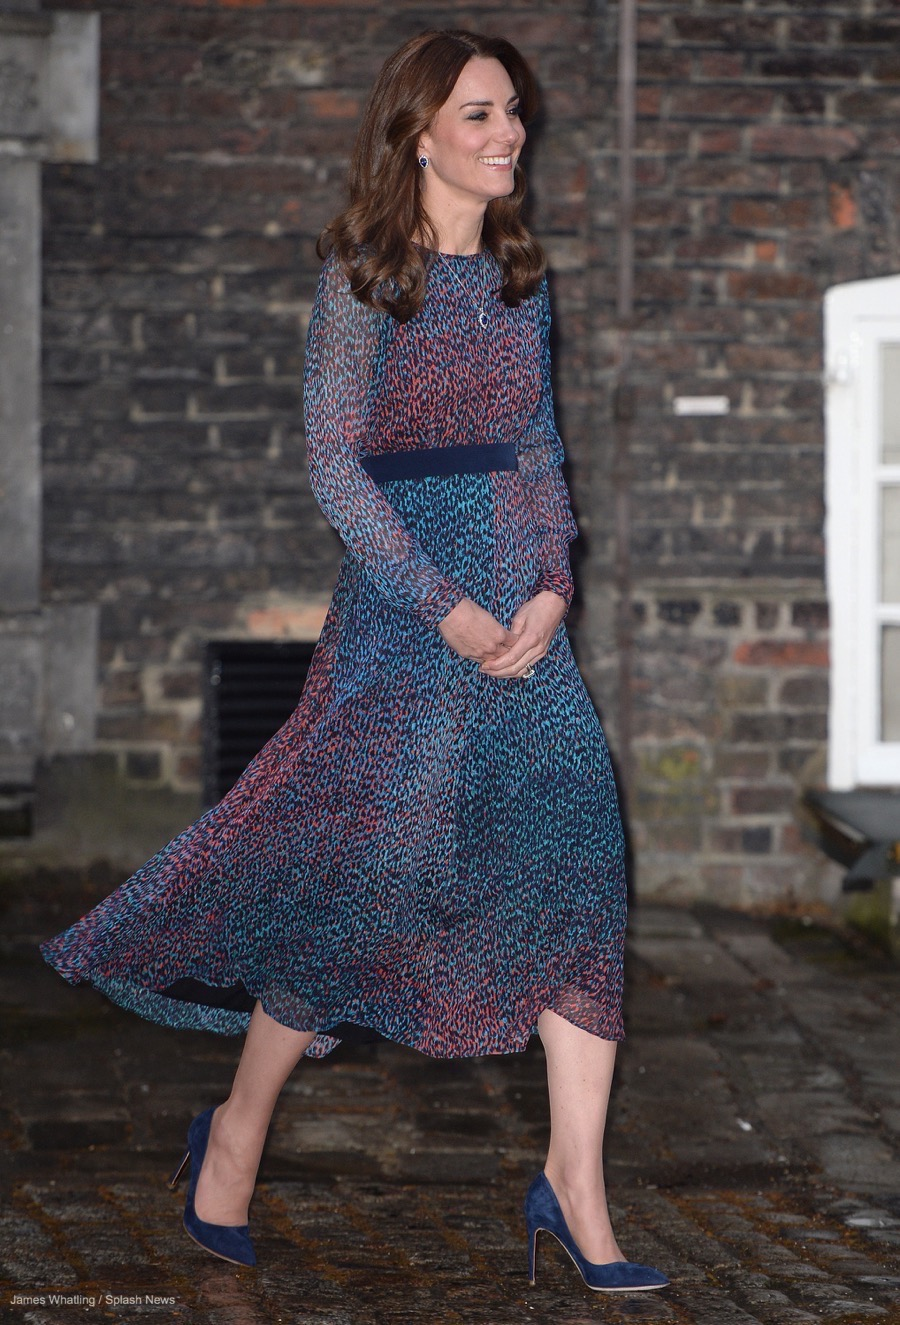 Kate Middleton wearing the L.K. Bennett Addison Dress